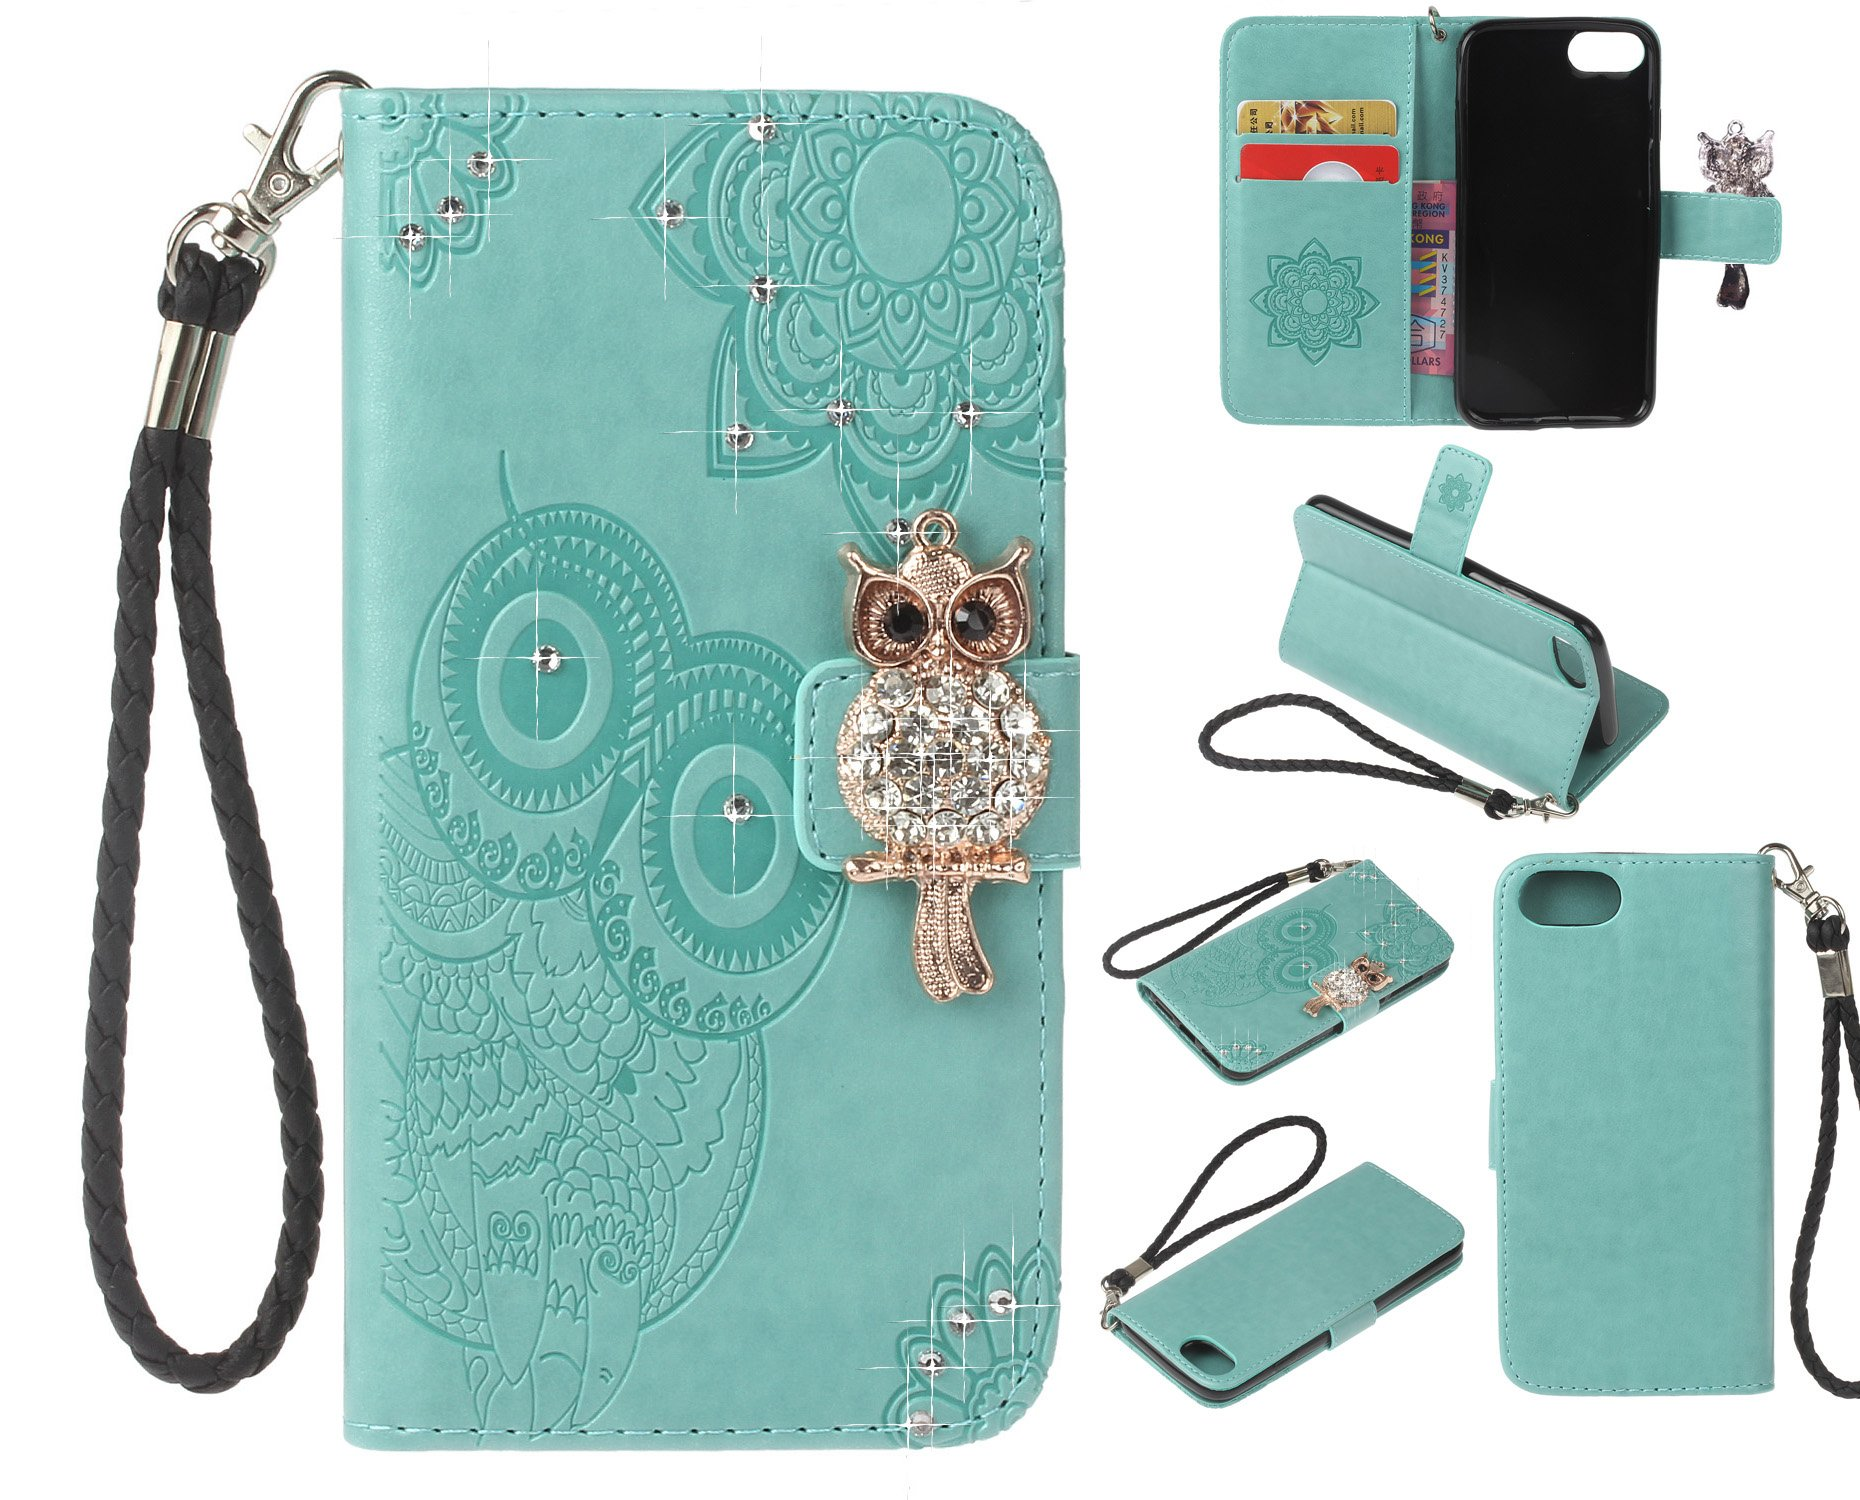 Strap Diamond Wallet Case for iPhone 7/iPhone 8 4.7 Inch,Aoucase Luxury 3D Owl Bling Gems Magnetic Cute Mandala Print PU Leather Soft TPU Stand Flip Case with Black Dual-use Pen - Green by Aoucase